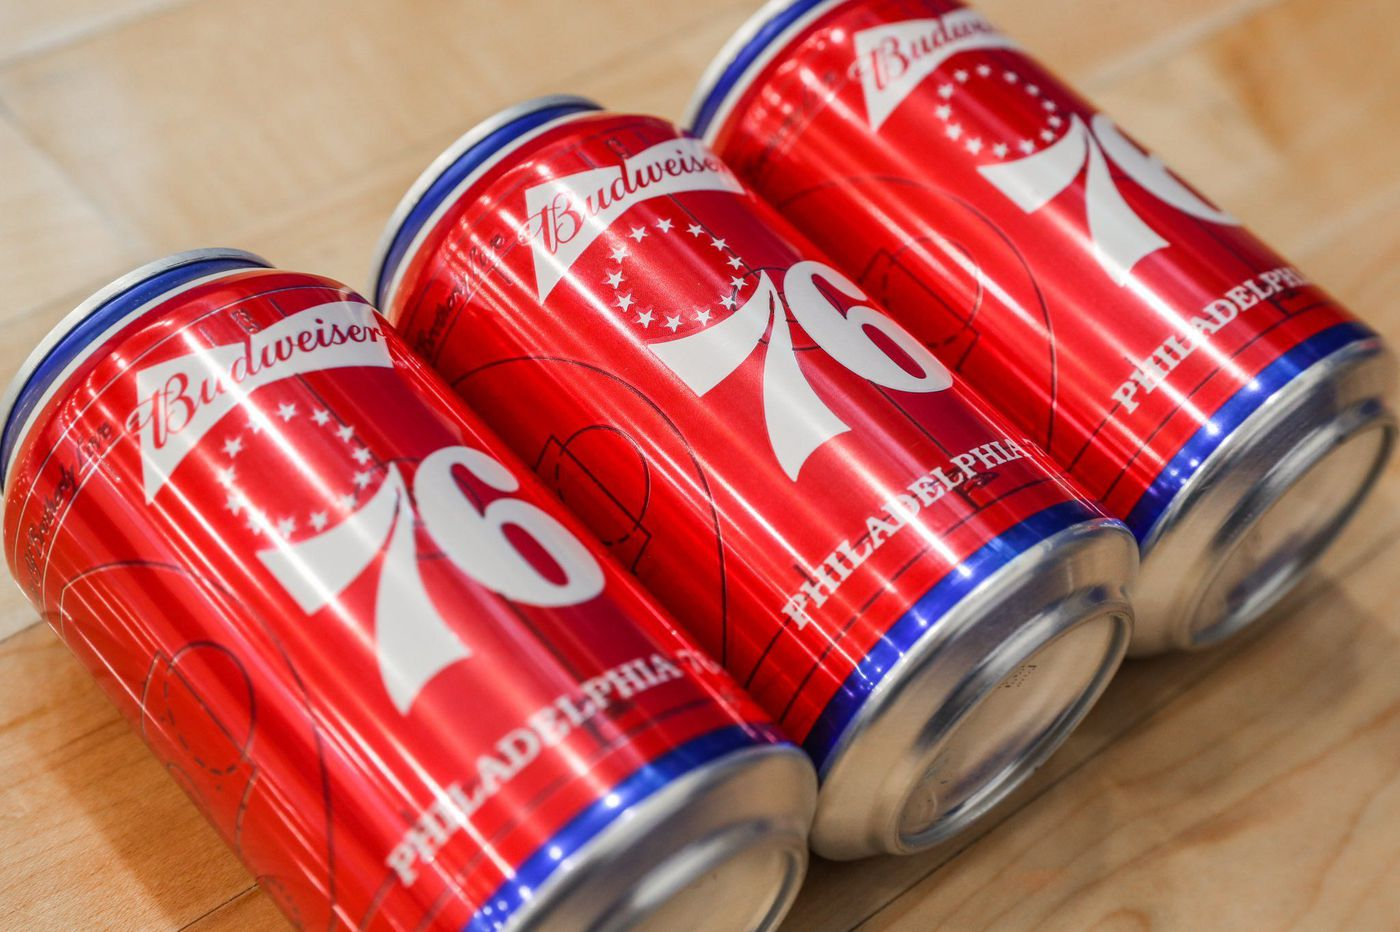 Sixers get their own Budweiser can, but this isn't their first brew